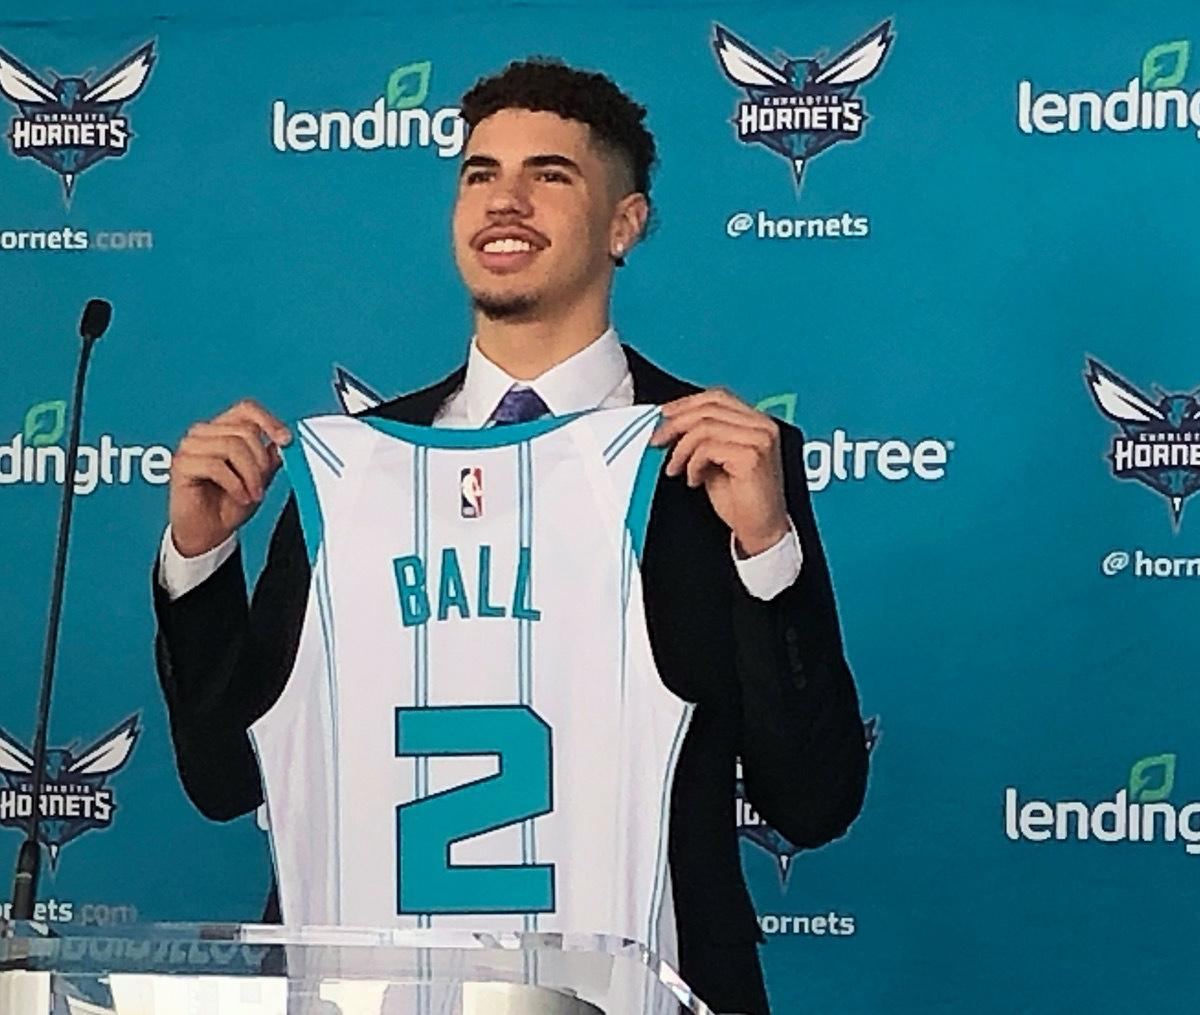 Report: Hornets' LaMelo Ball Expected to Miss Rest of Season with Wrist Injury – Bleacher Report